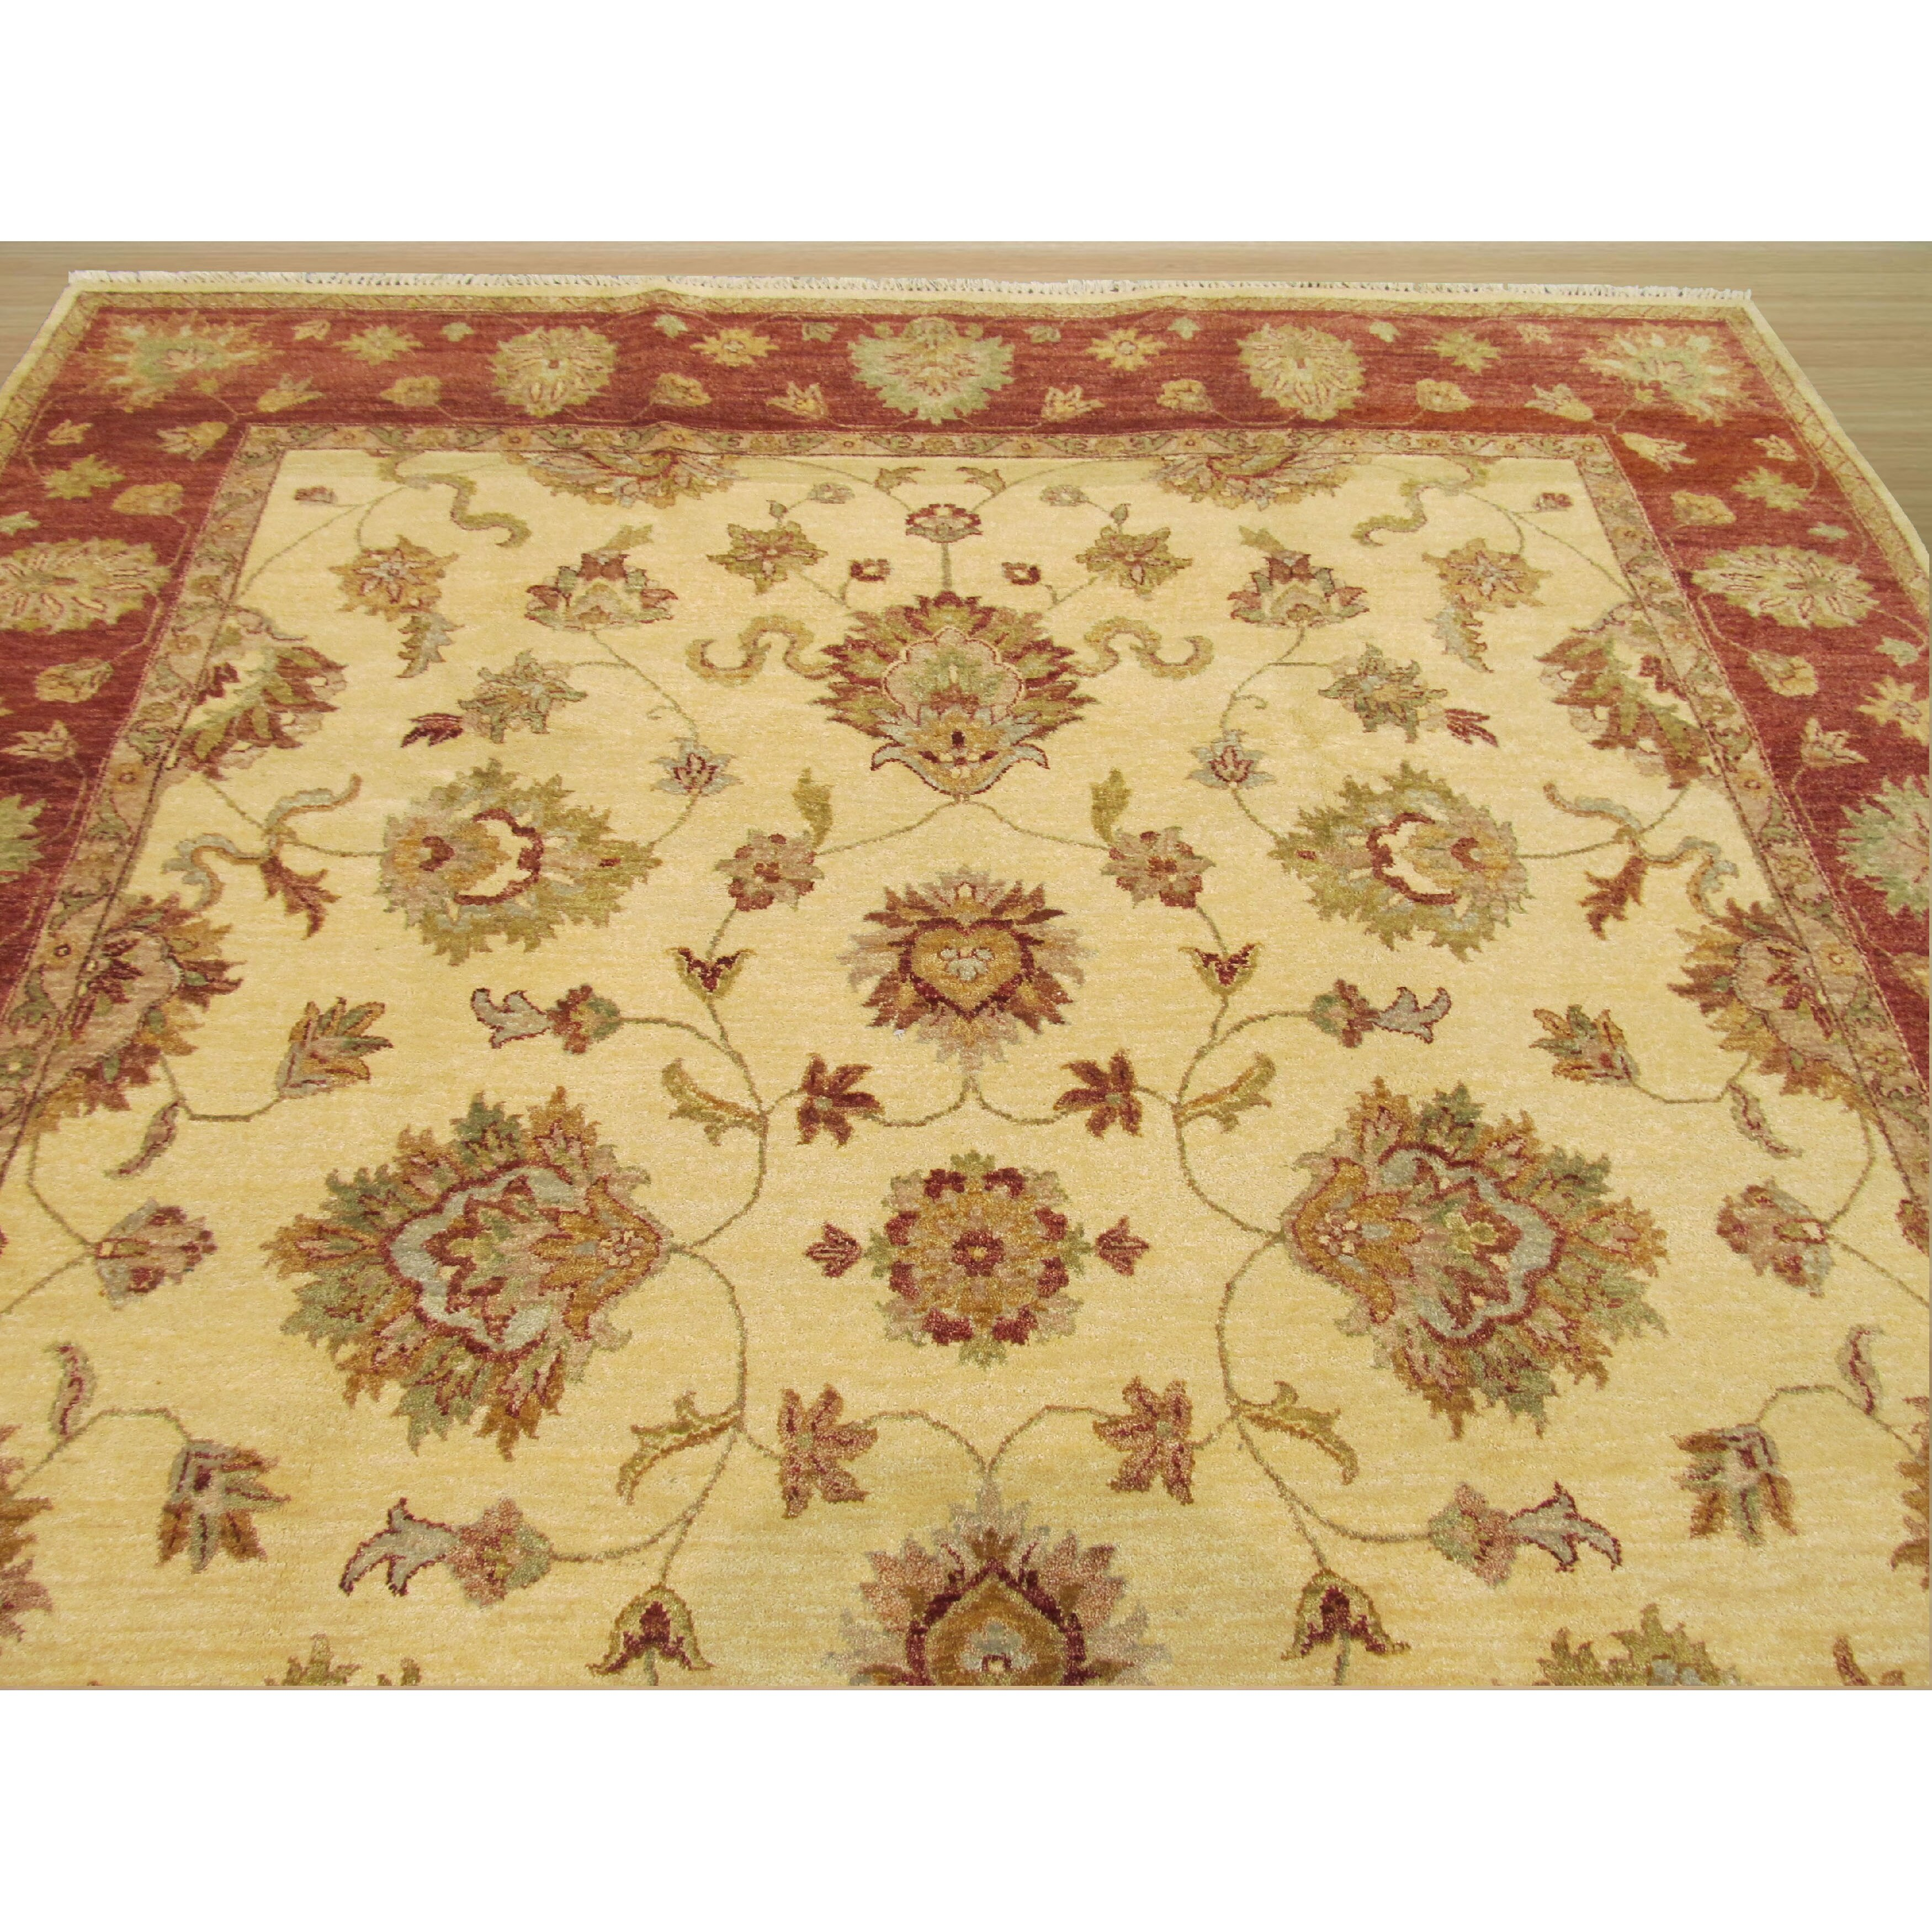 Chevron Knot Rug Ivory: Eastern Rugs Hand-Knotted Ivory Area Rug